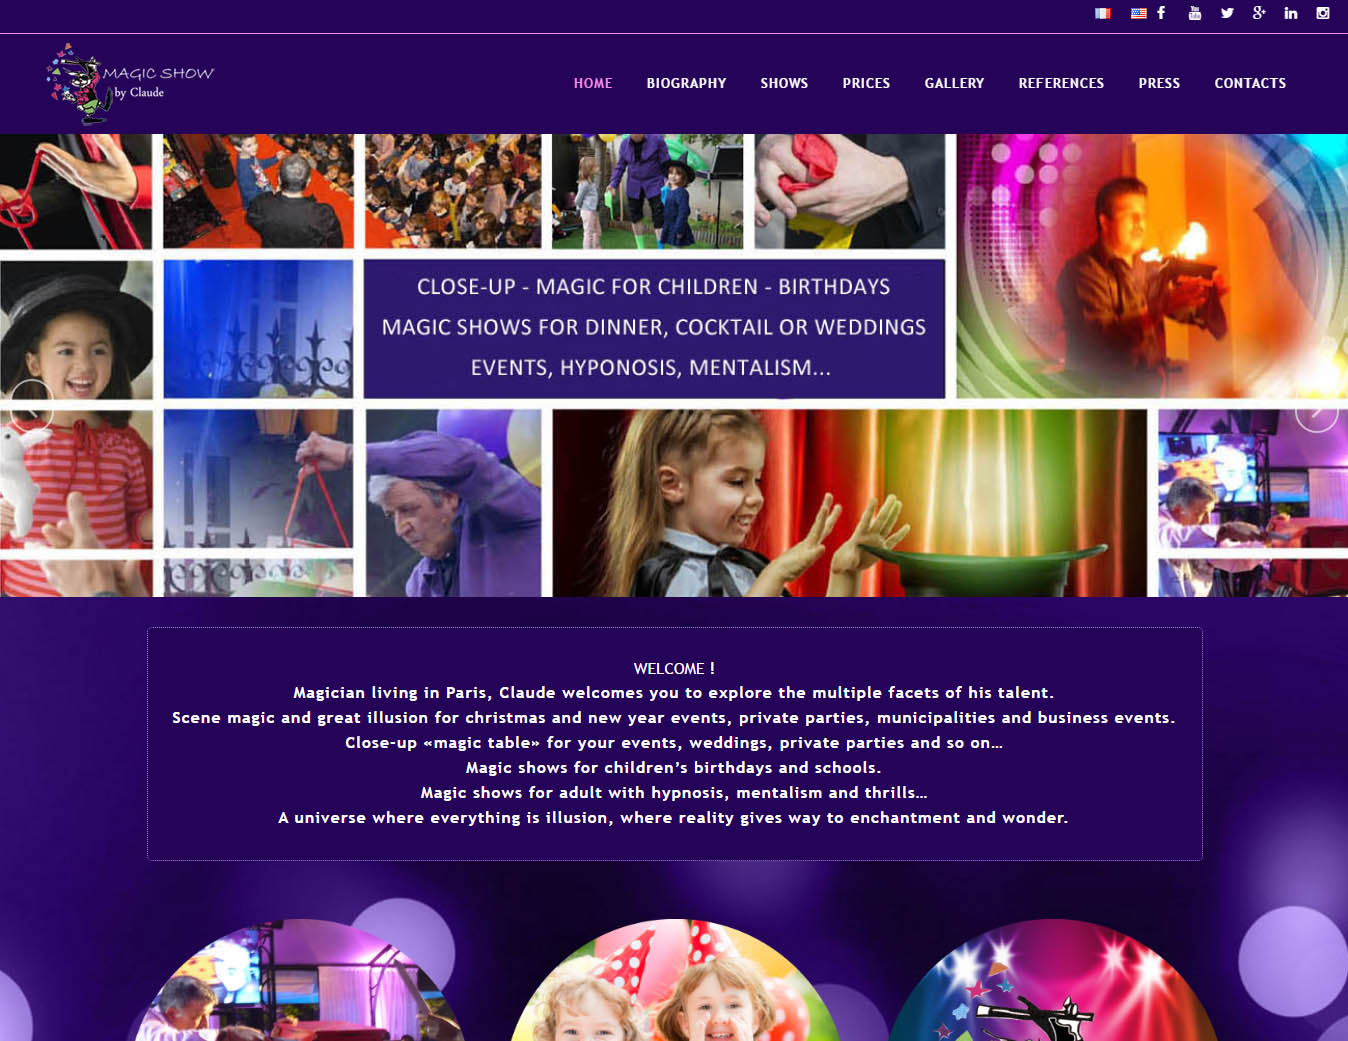 Magic passion website in Paris, web design and web devolopment in CMS by Marilooweb